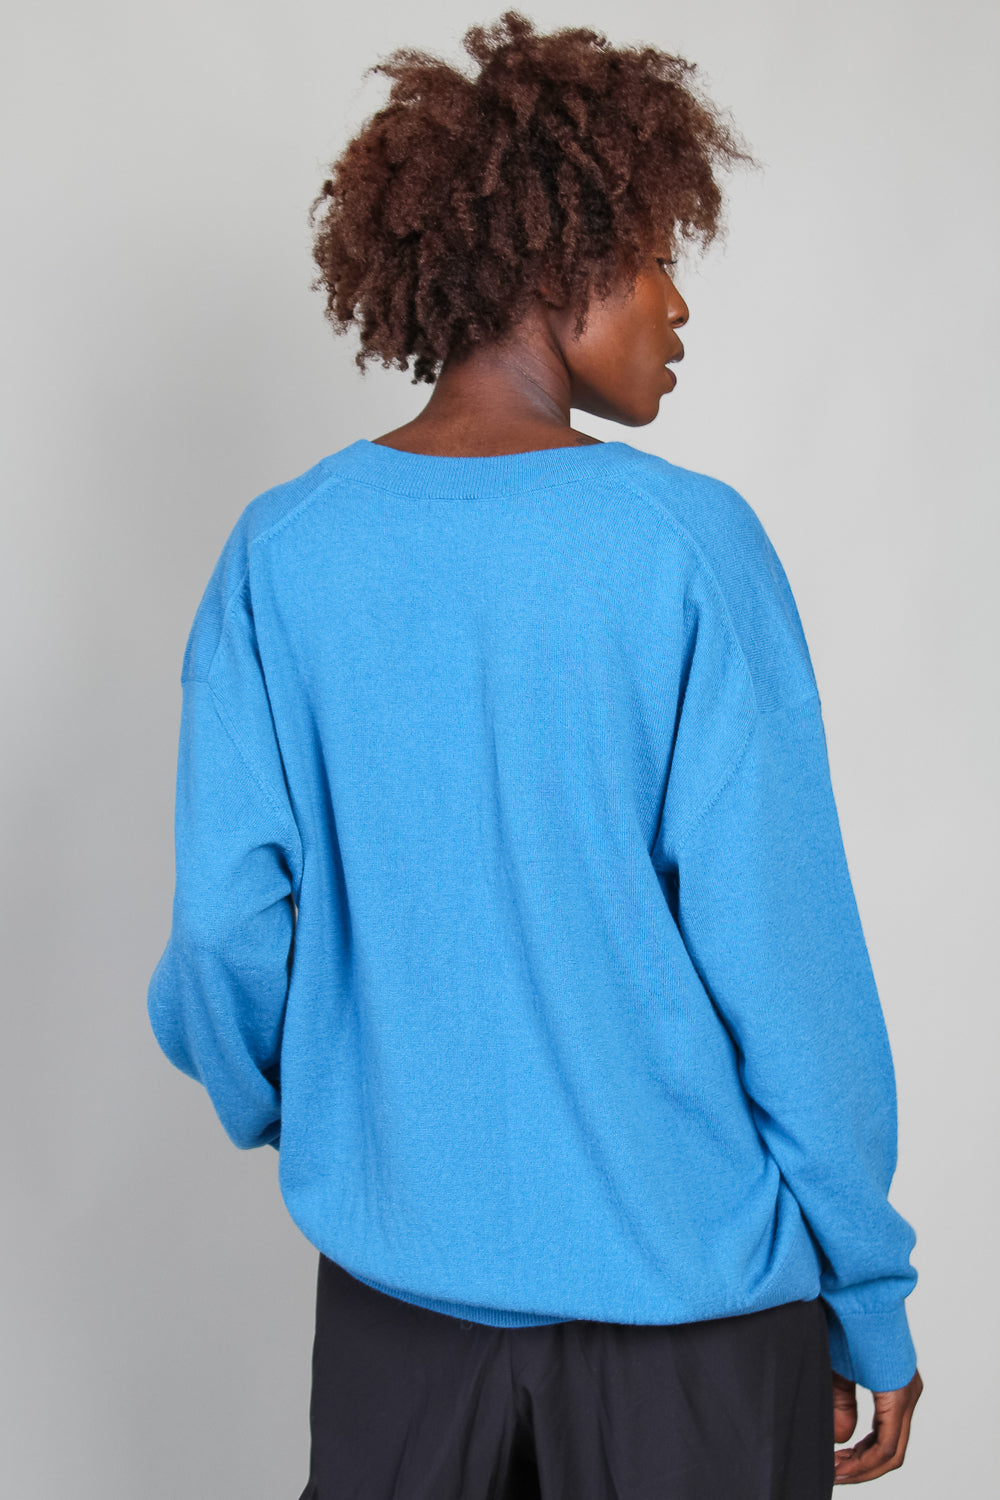 Khage Sweater in Duck Blue